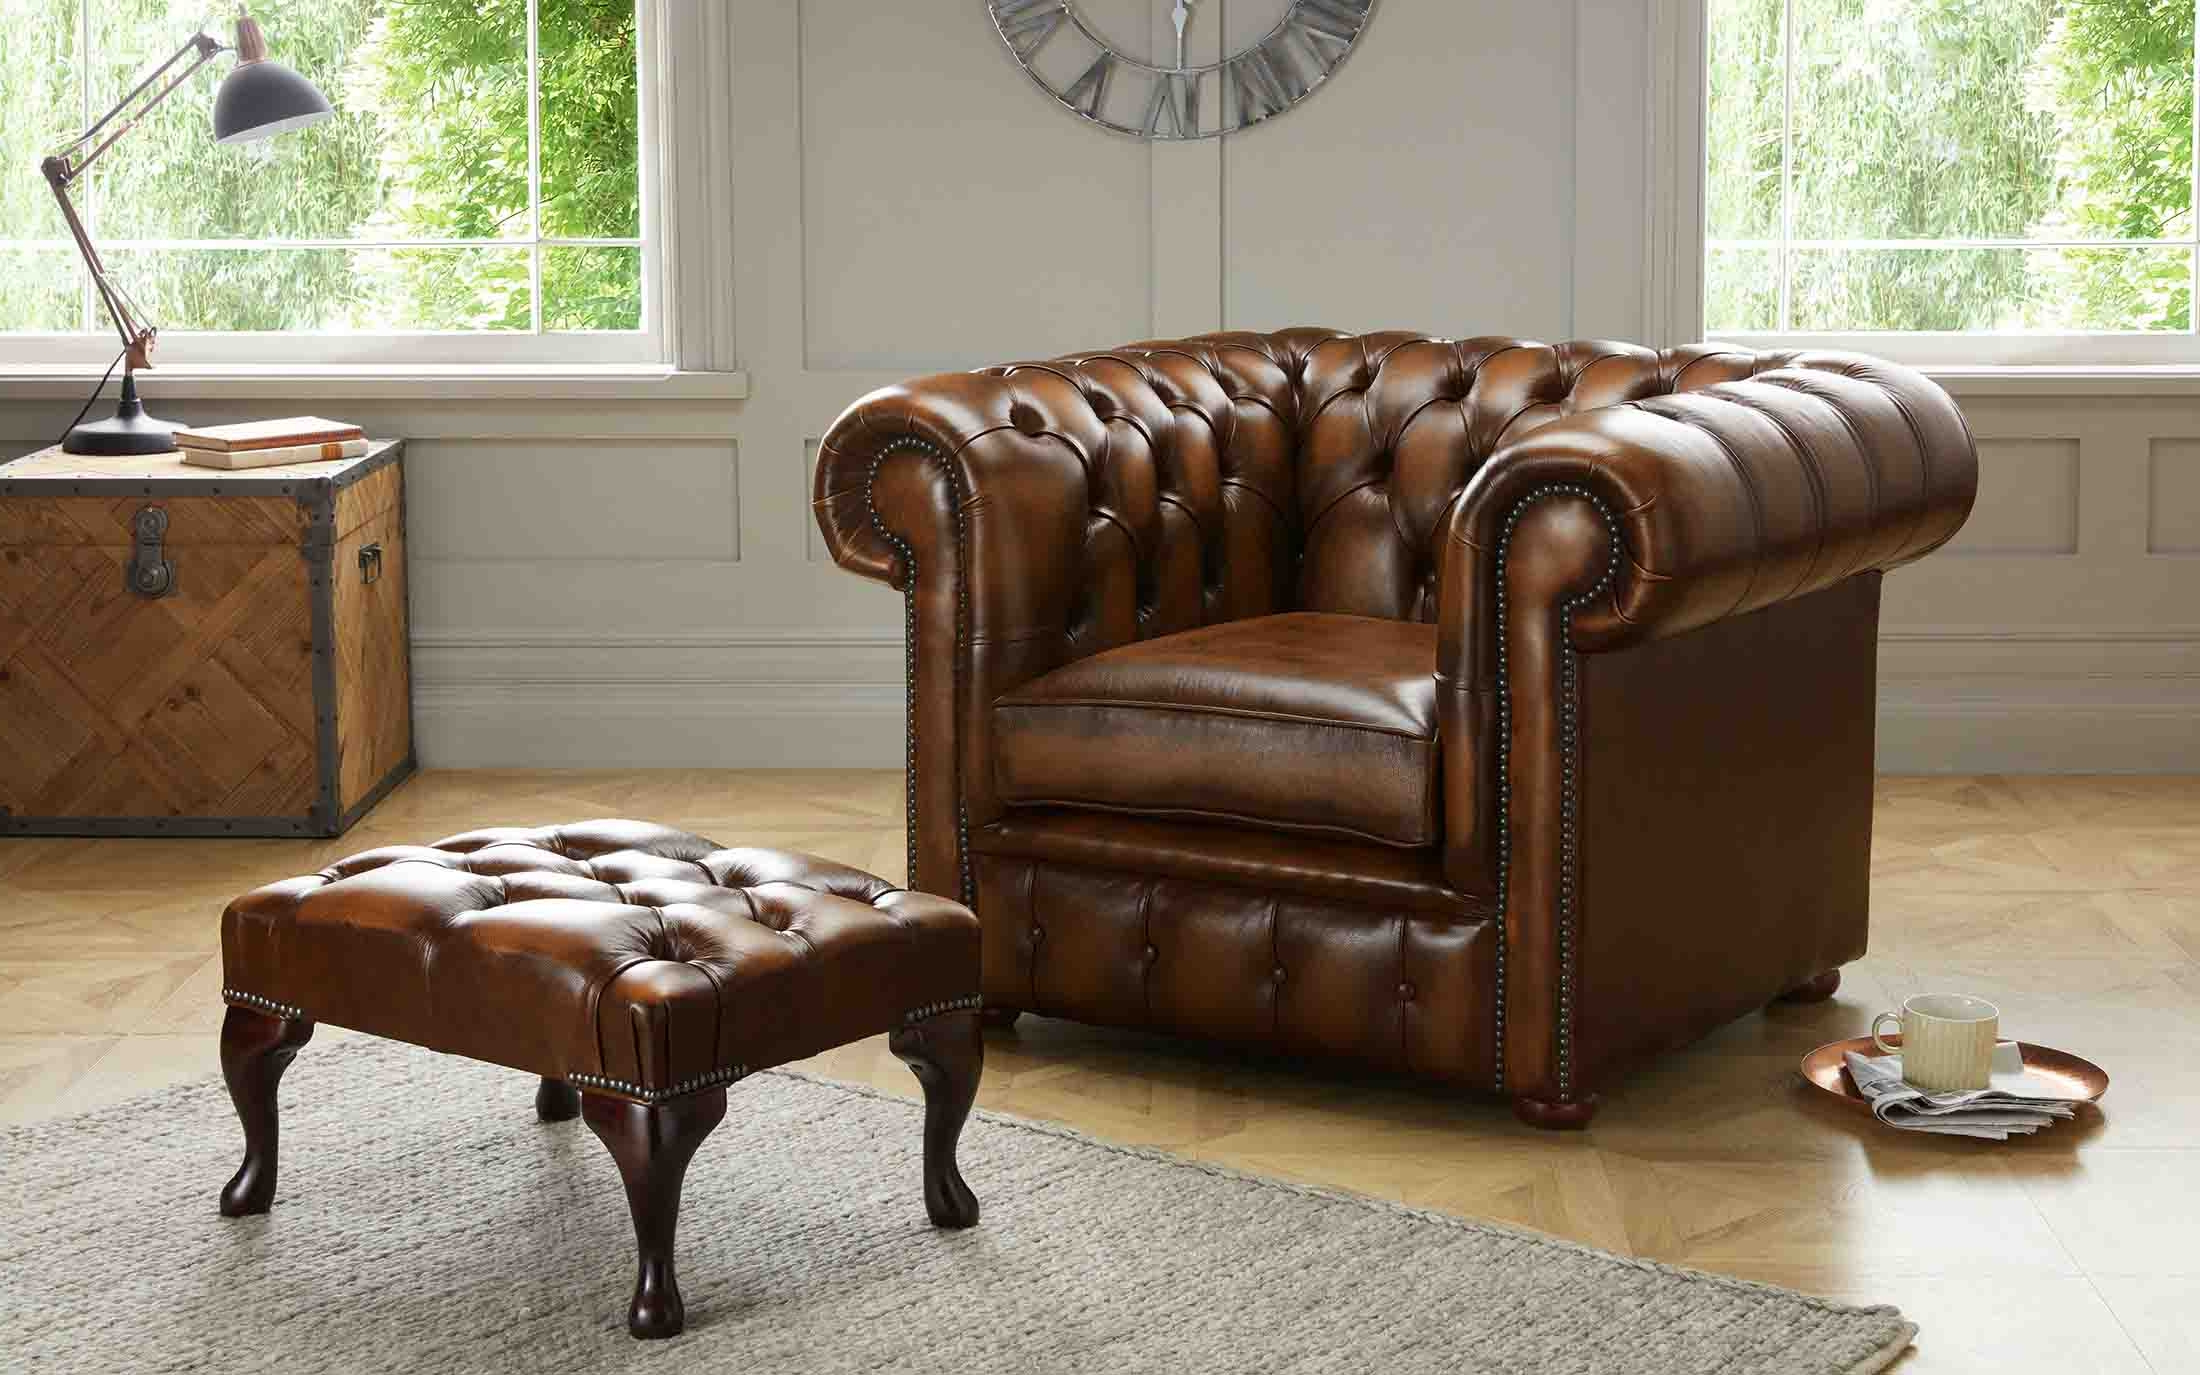 Most Recent Chesterfield Sofa And Chairs In Chesterfield Sofa And Chair For Sale (Gallery 16 of 20)